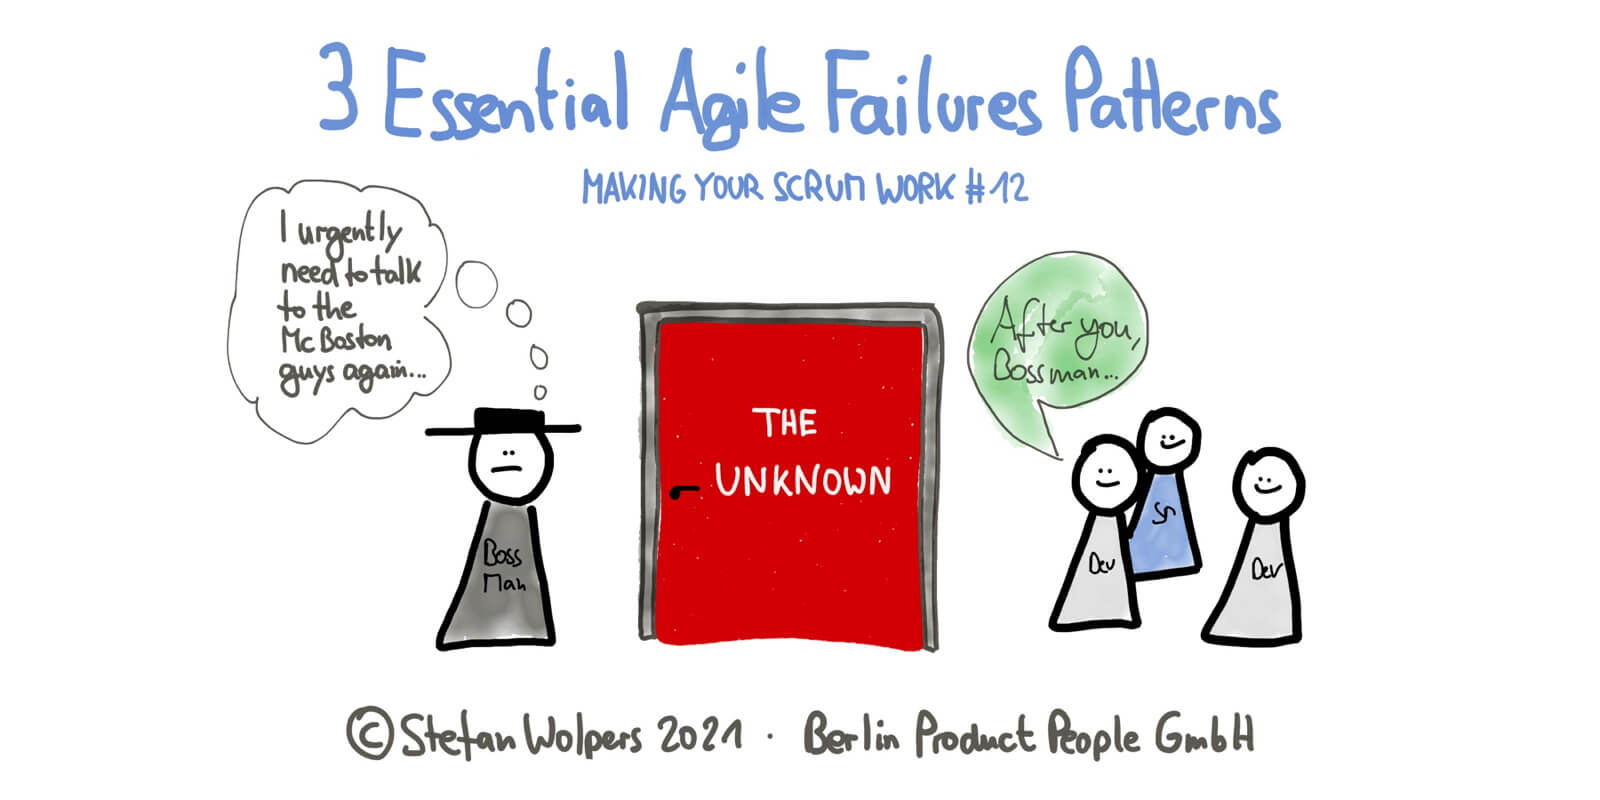 Three Essential Agile Failure Patterns in 7:31 Minutes—Making Your Scrum Work #12 — Age-of-Product.com